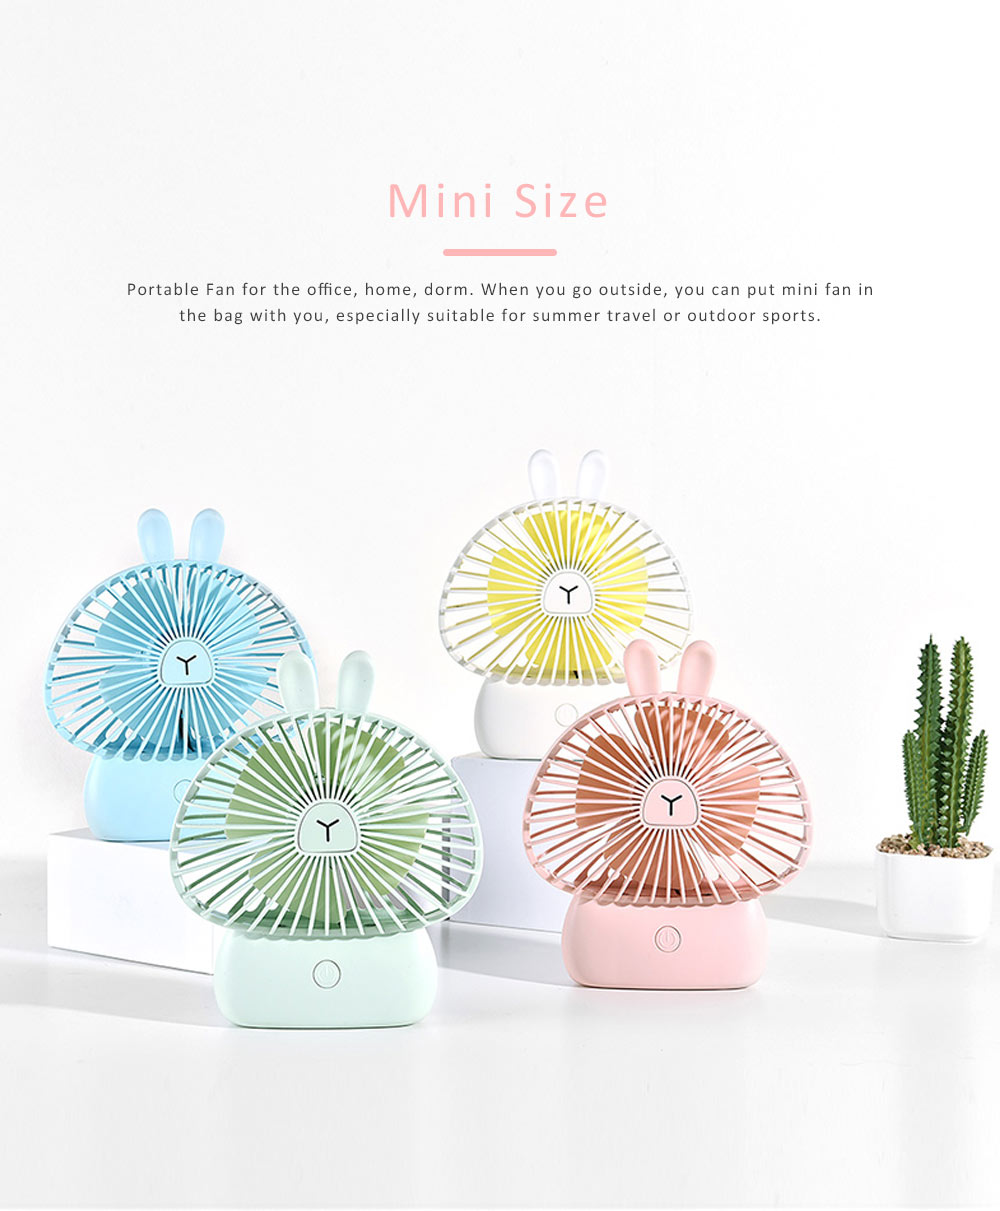 Portable Desk USB Fan Mini Stroller Table Fan with USB Rechargeable Battery Small Size 4 Speeds for Home Office and Dorm-White 4